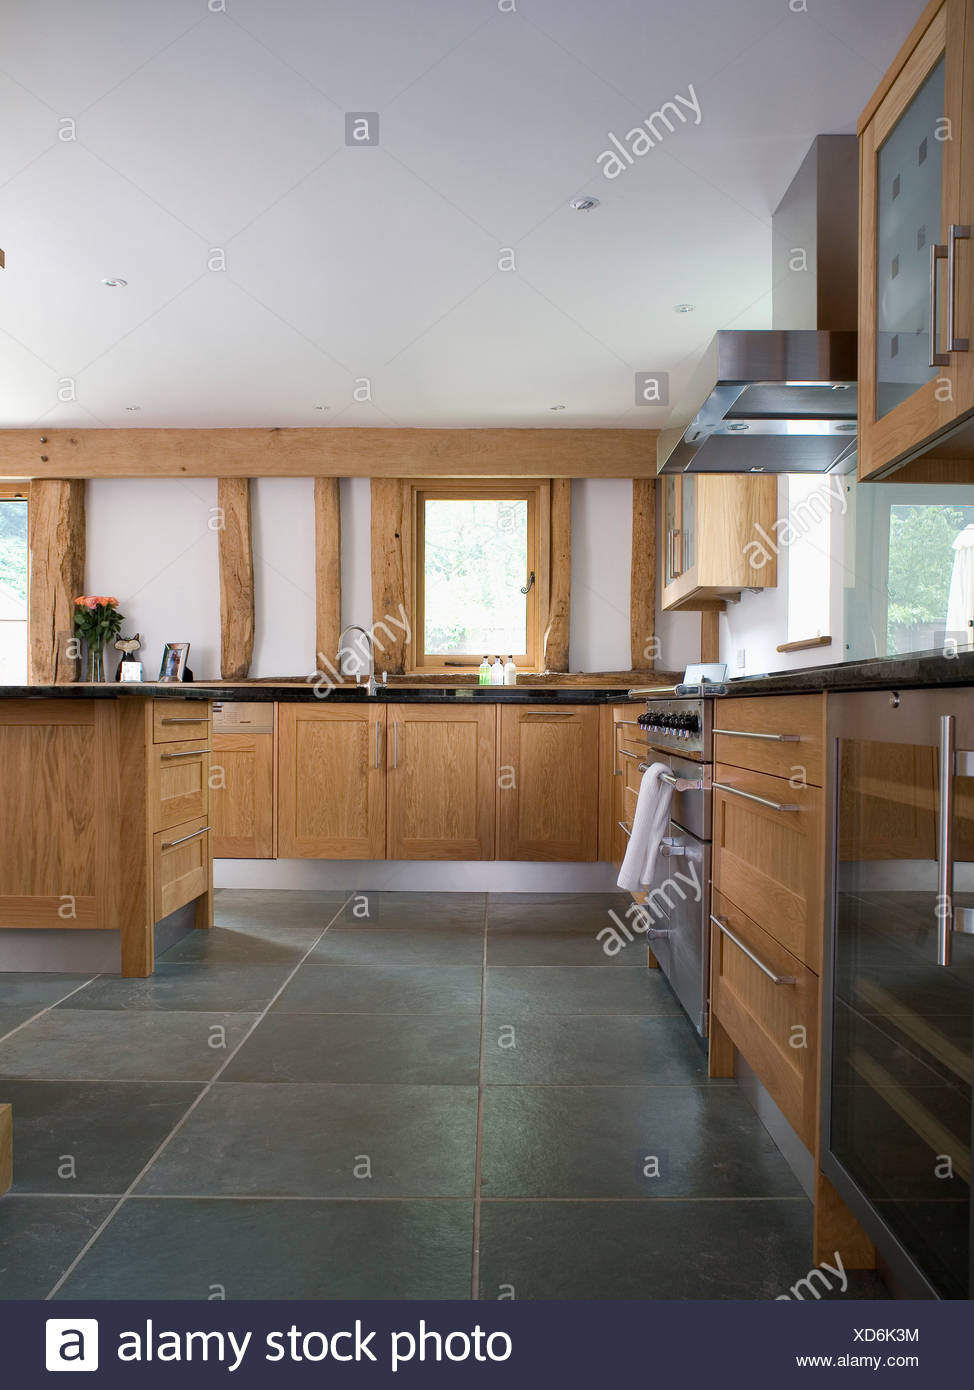 Slate flooring in large modern country kitchen with pale wood fitted units